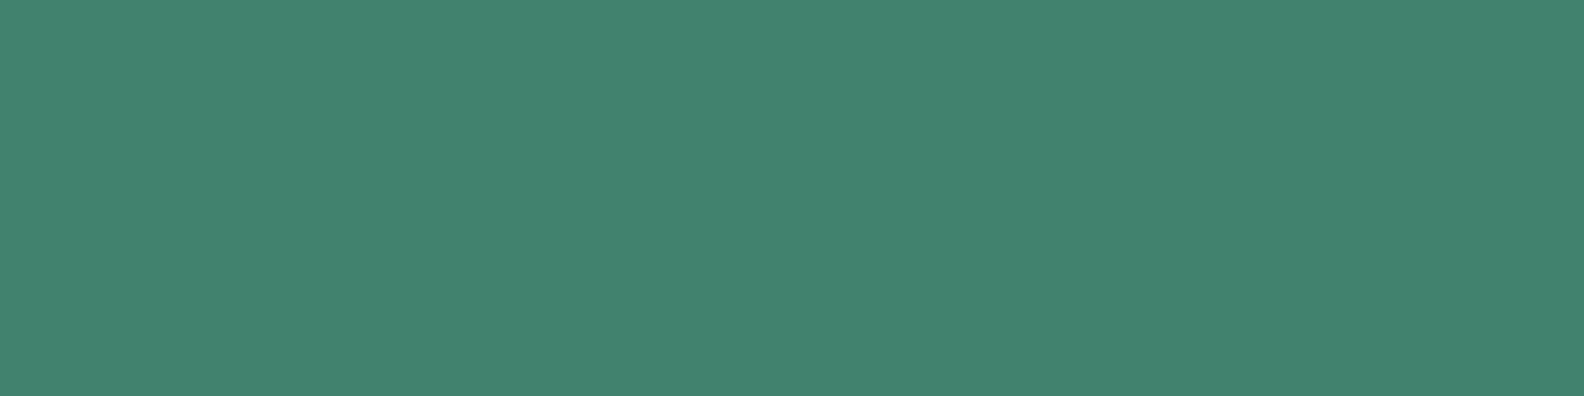 1584x396 Viridian Solid Color Background